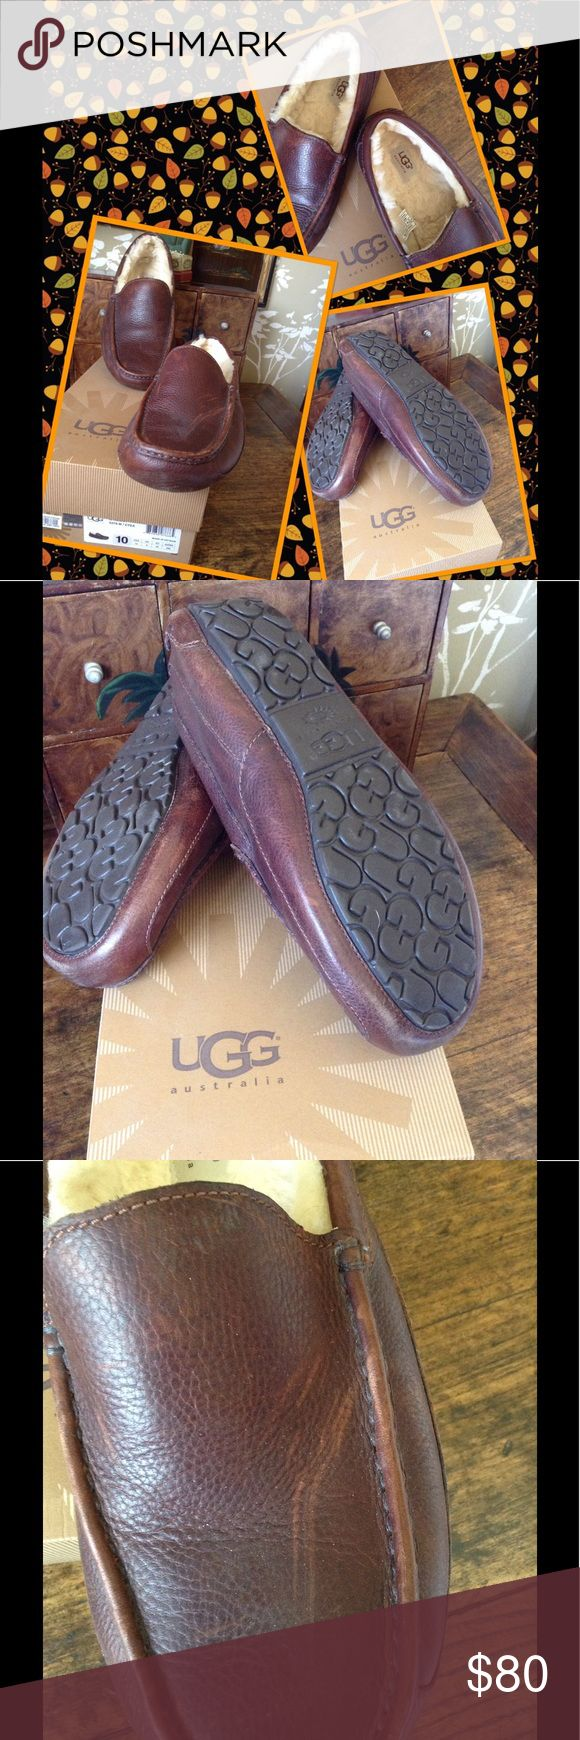 UGG Men's Leather Slippers Almost new leather with shearling wool lining. These slippers can be worn outdoors as they have rubber tread soles. They are a size 10 Snug) and fit a 9 1/2 comfortably as well. Scratches on leather are part of the type of leather. UGG Shoes